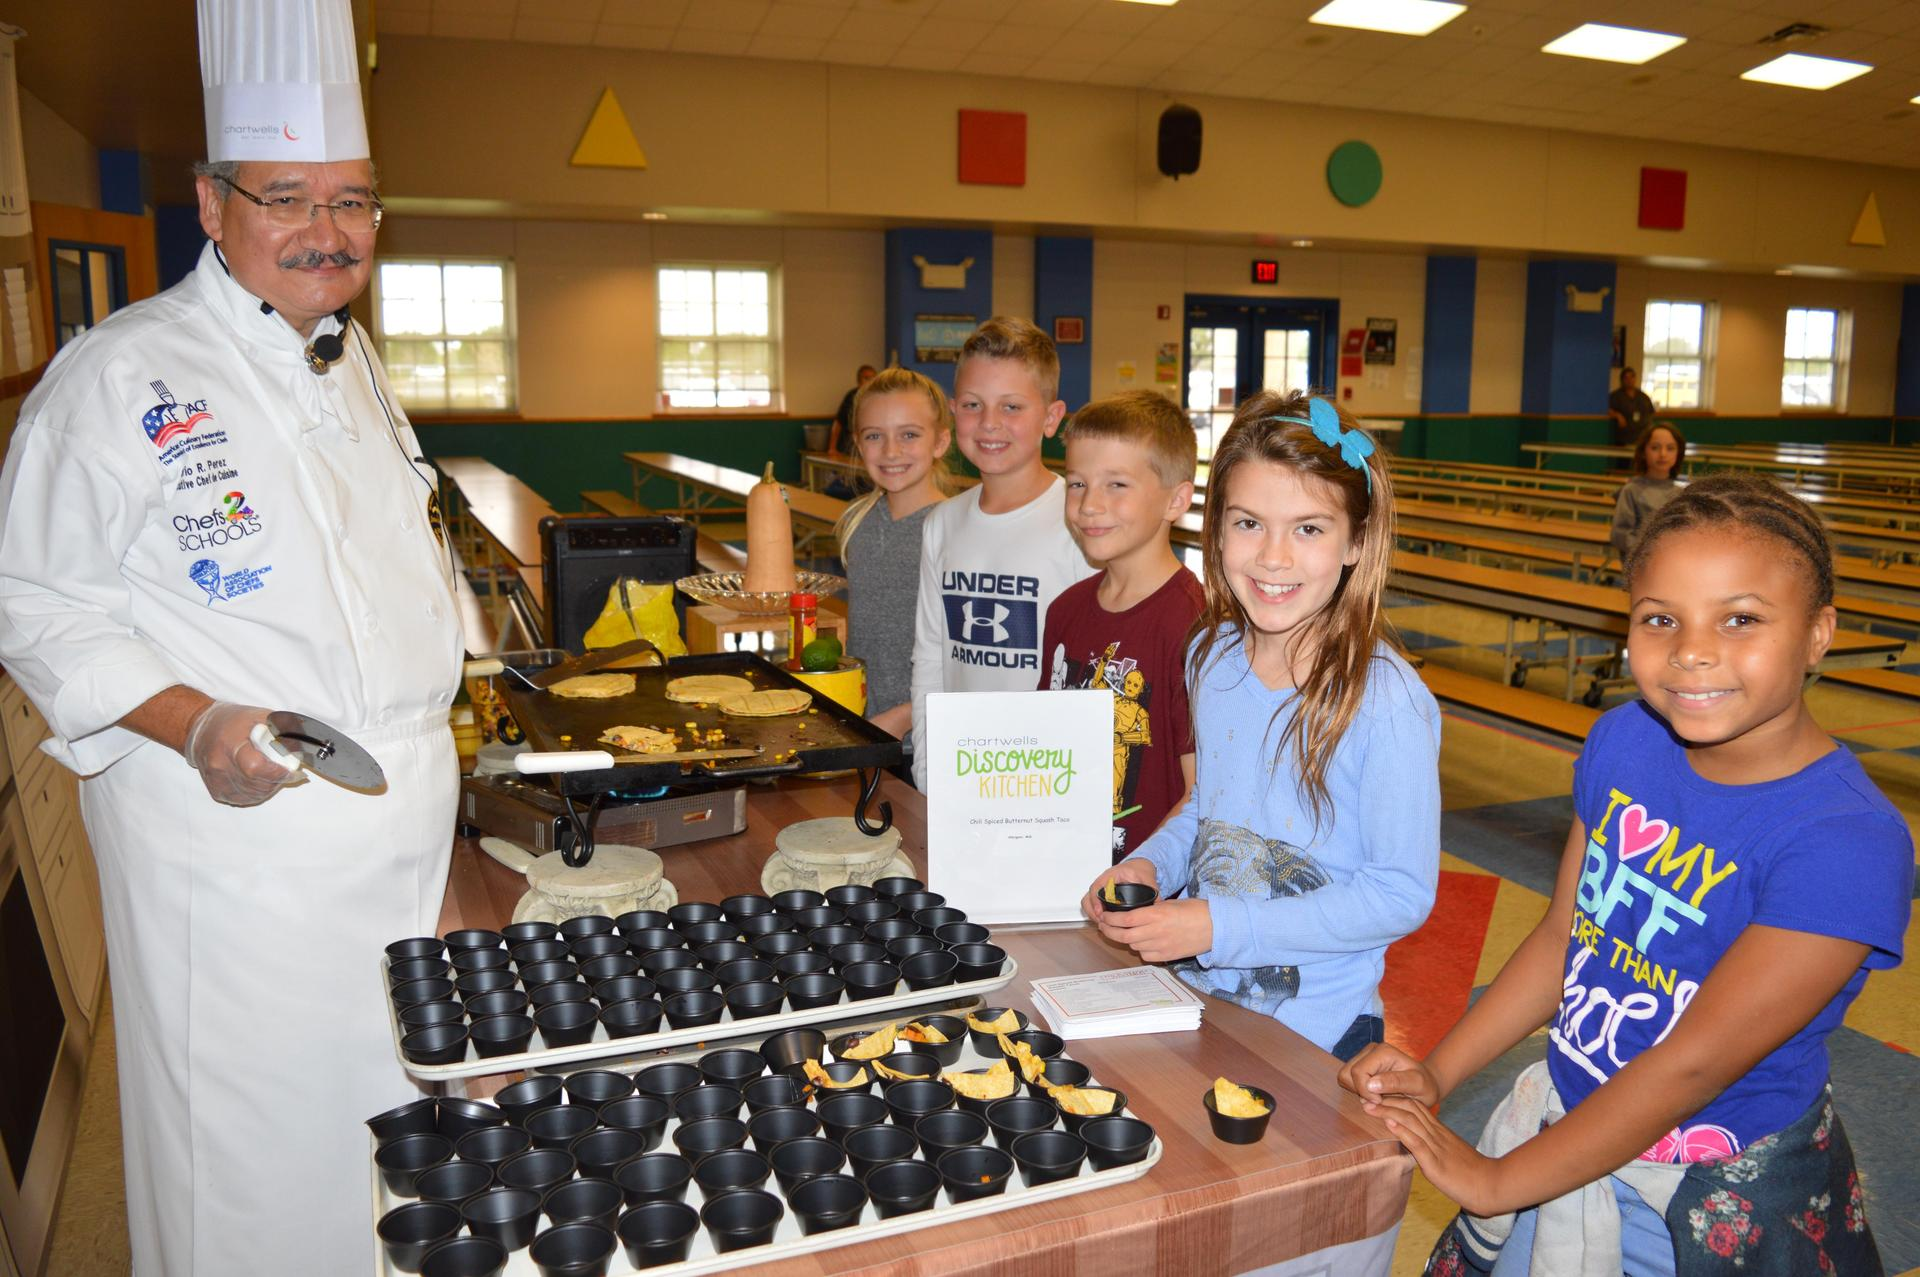 Chef Mario smiling with students.